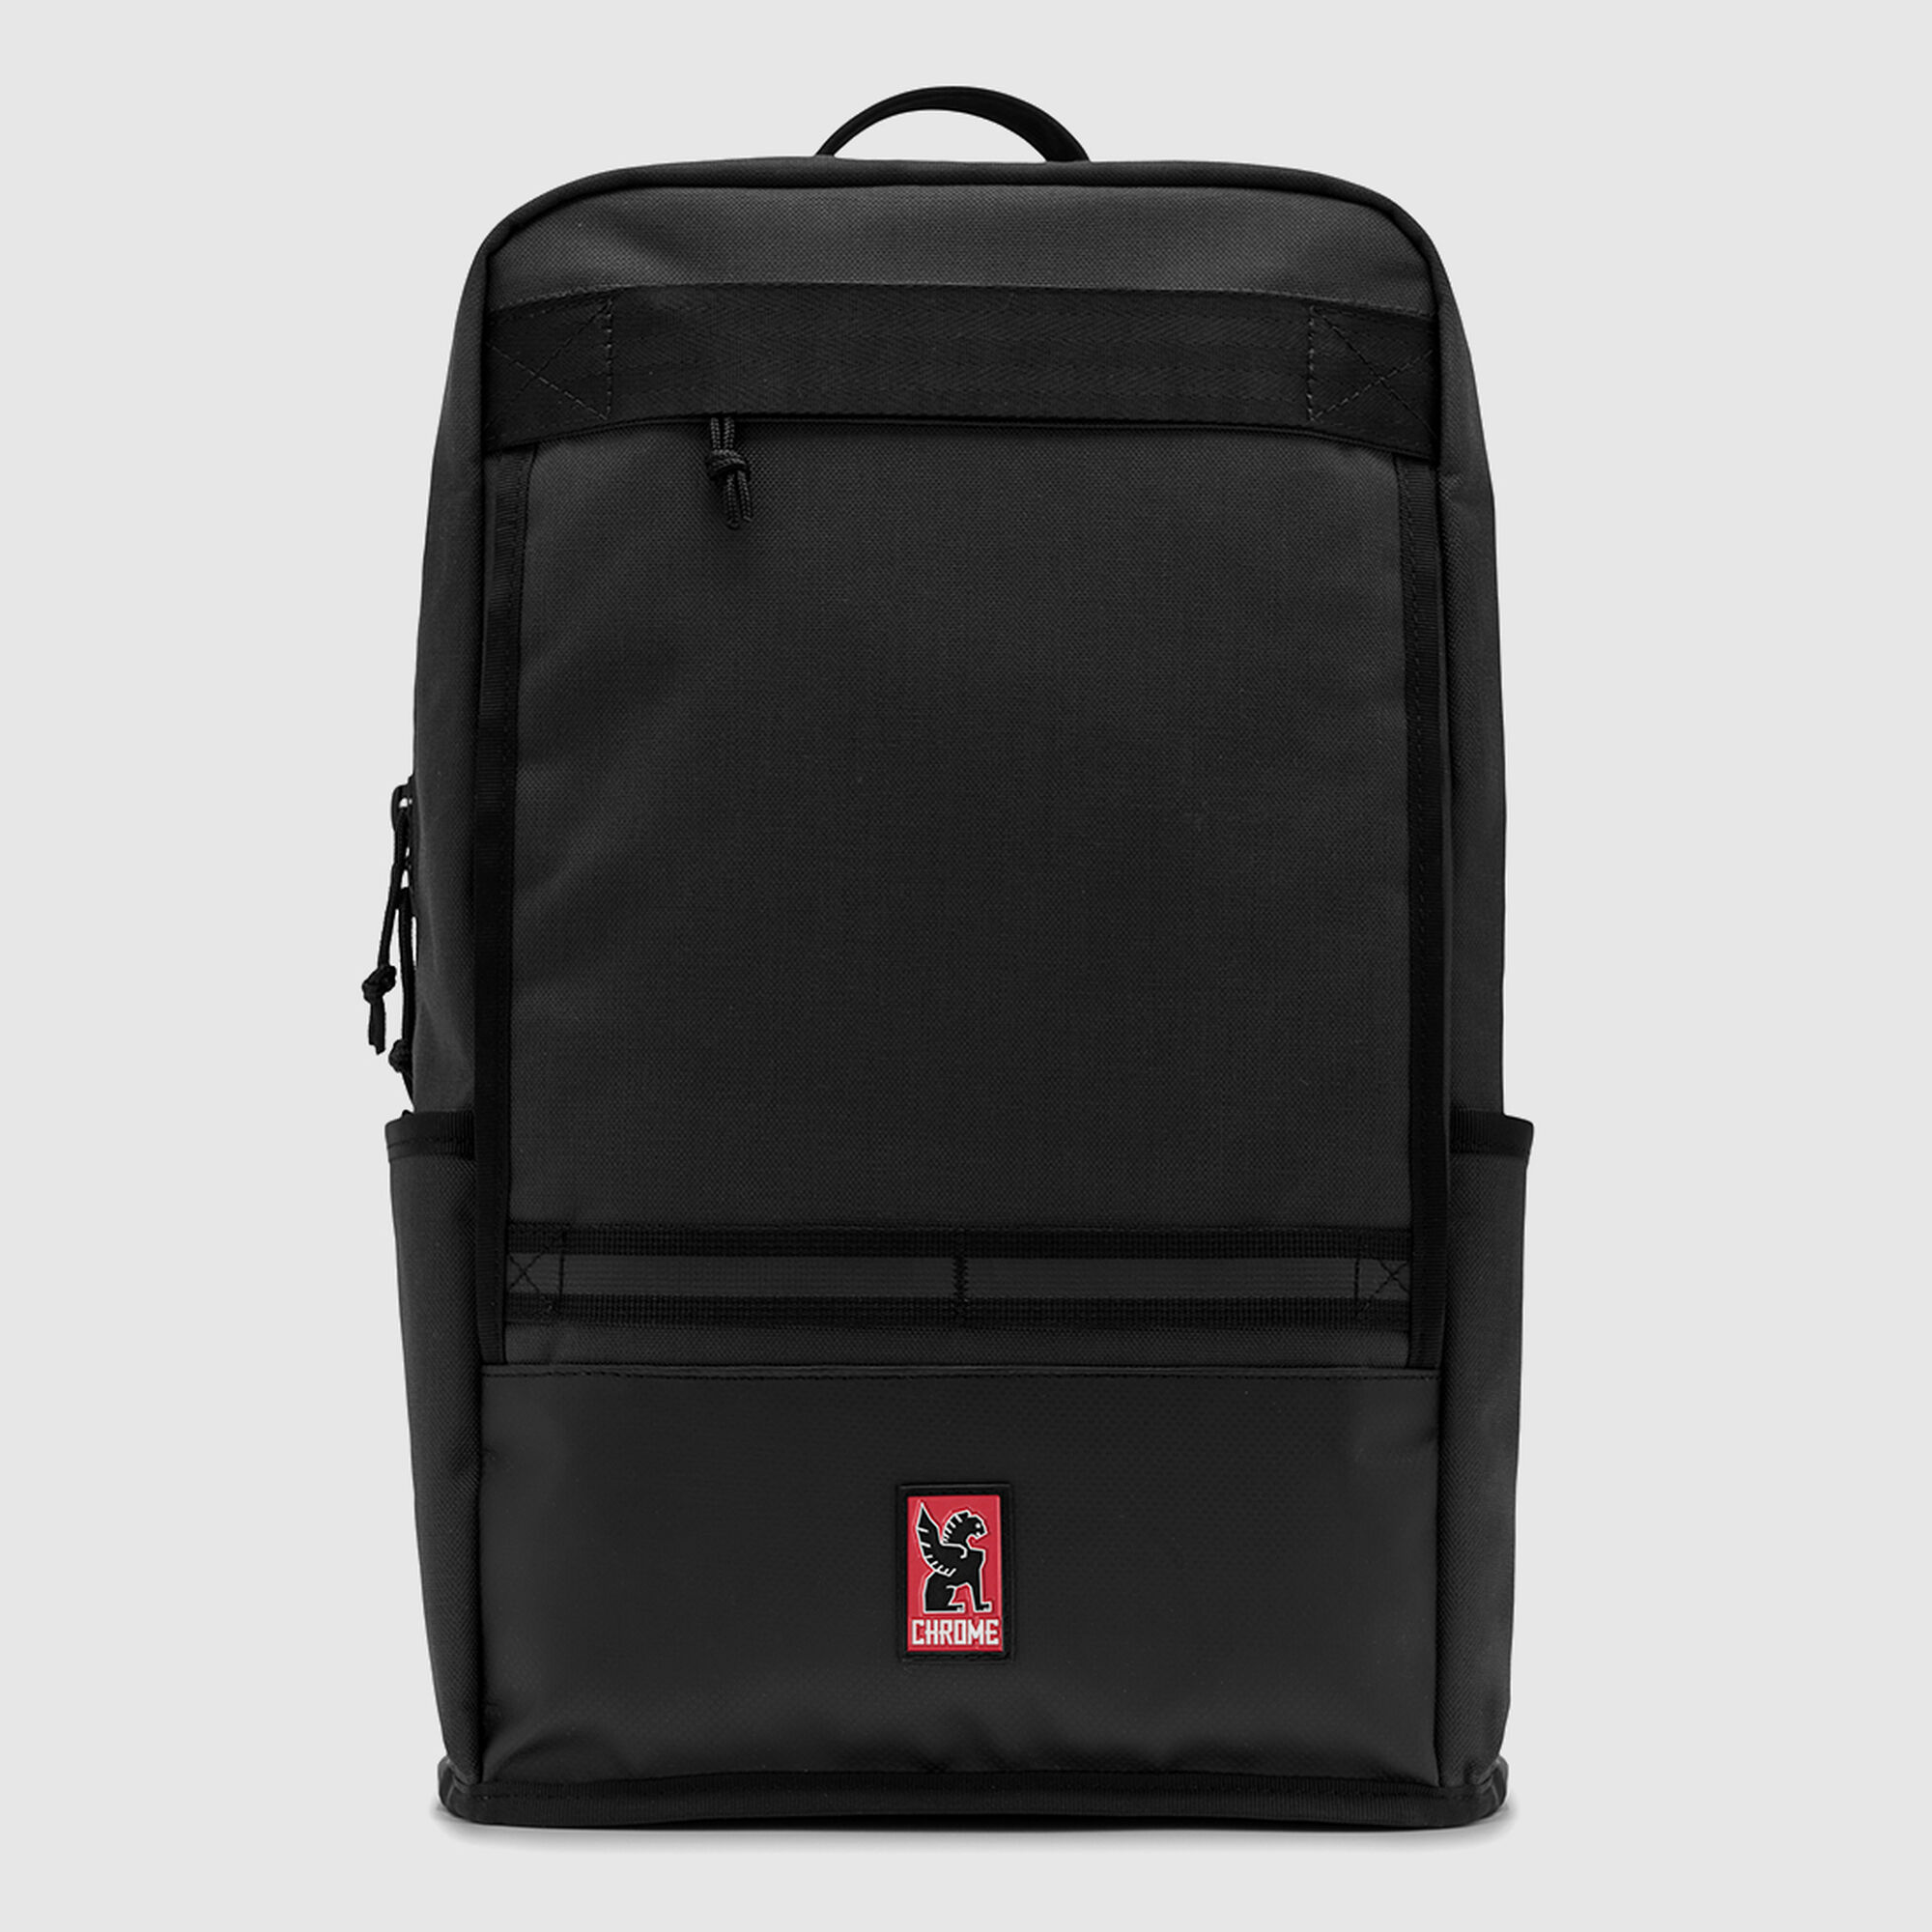 Hondo Backpack In Black Small View